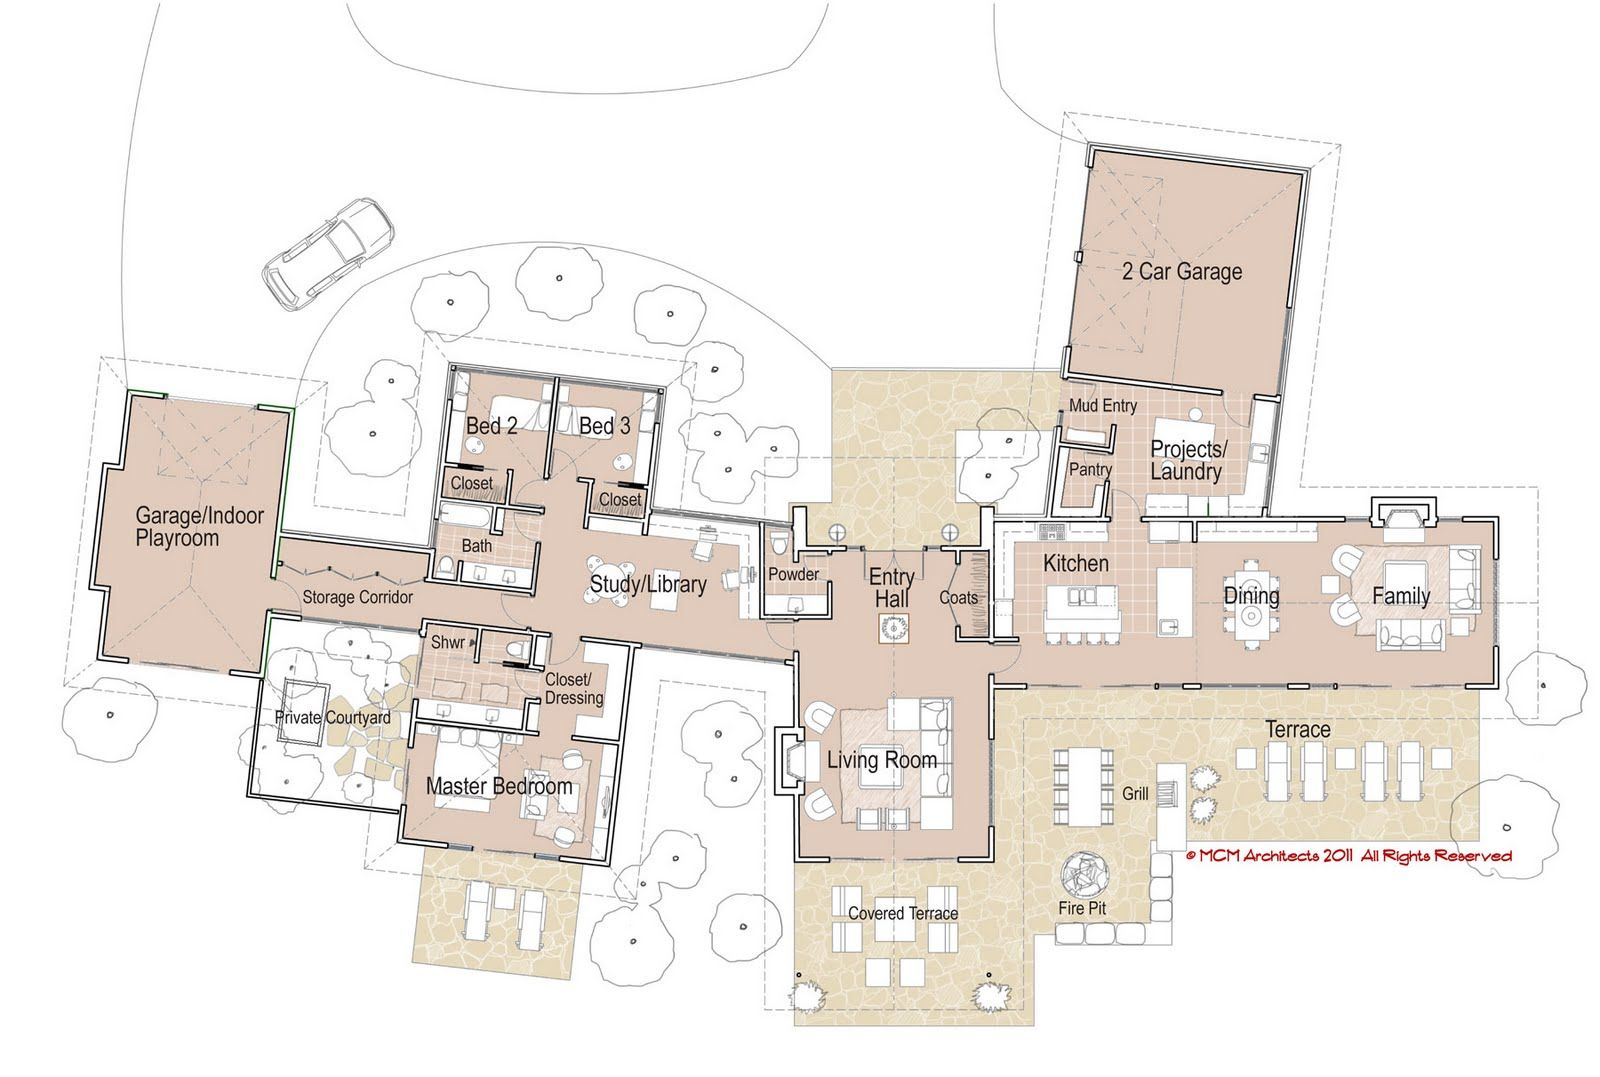 1000+ images about Floor Plans - too big, but fun on Pinterest - ^